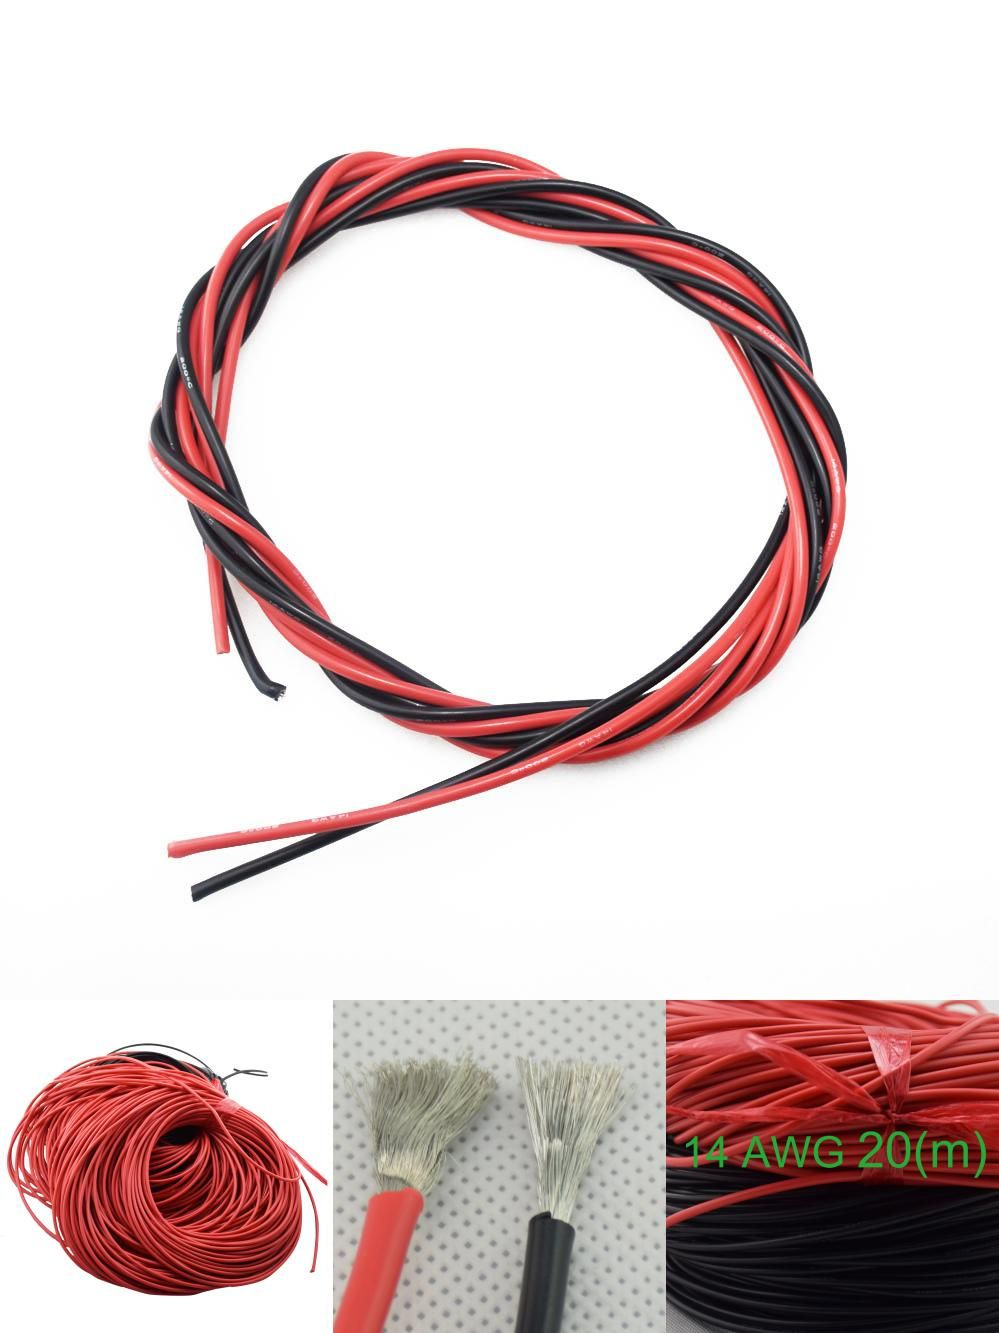 Visit to Buy] 14 AWG 67 Feet 20m Gauge Silicone Wire Flexible ...